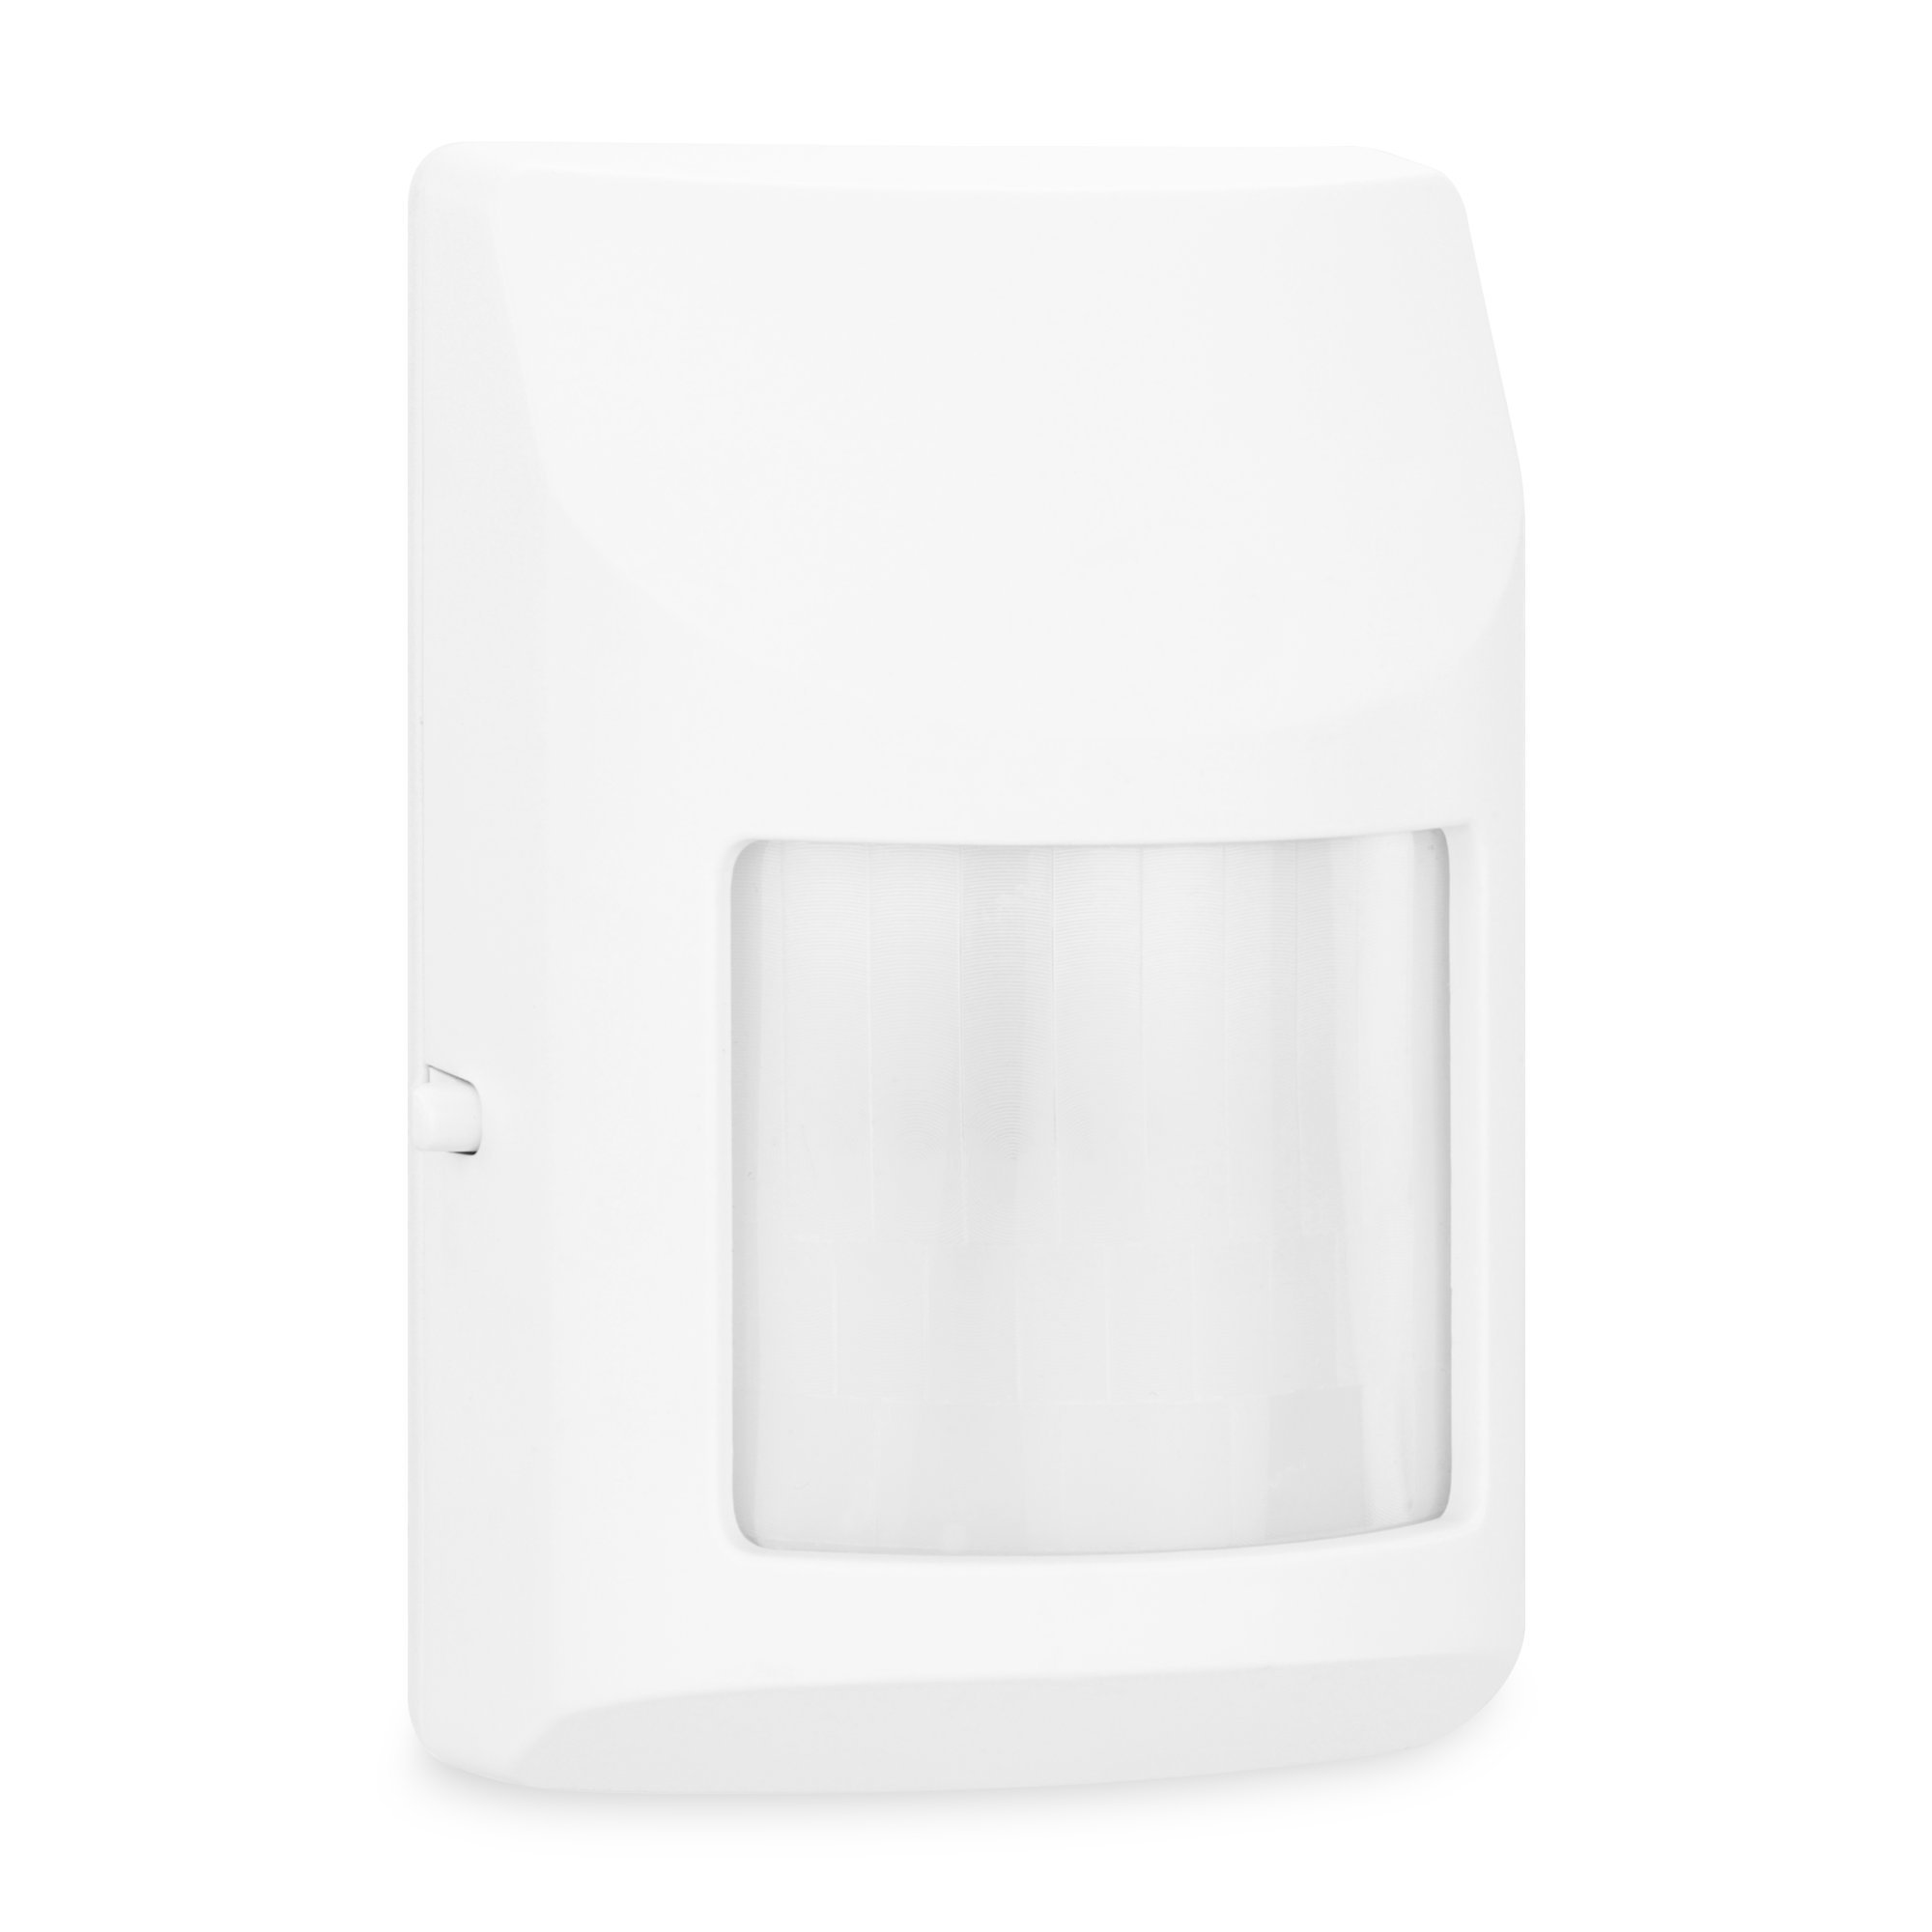 Samsung SmartThings ADT Motion Detector by Samsung Electronics